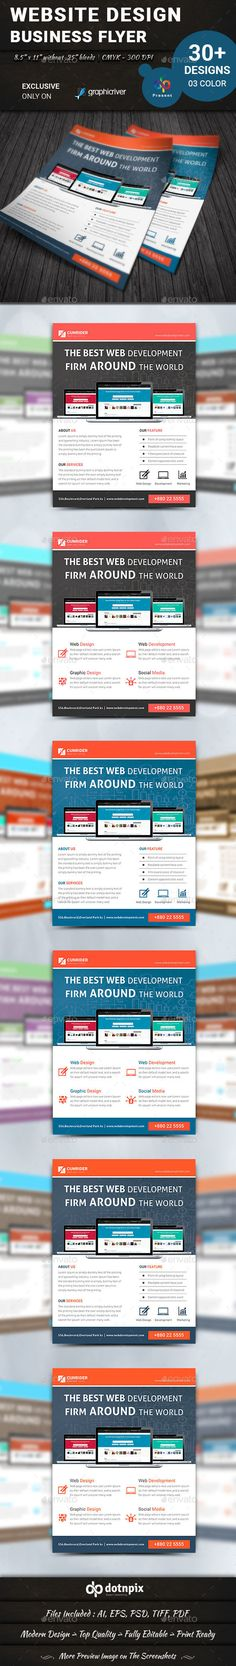 Website Design Flyer  Application Apps Website Designs And Adobe